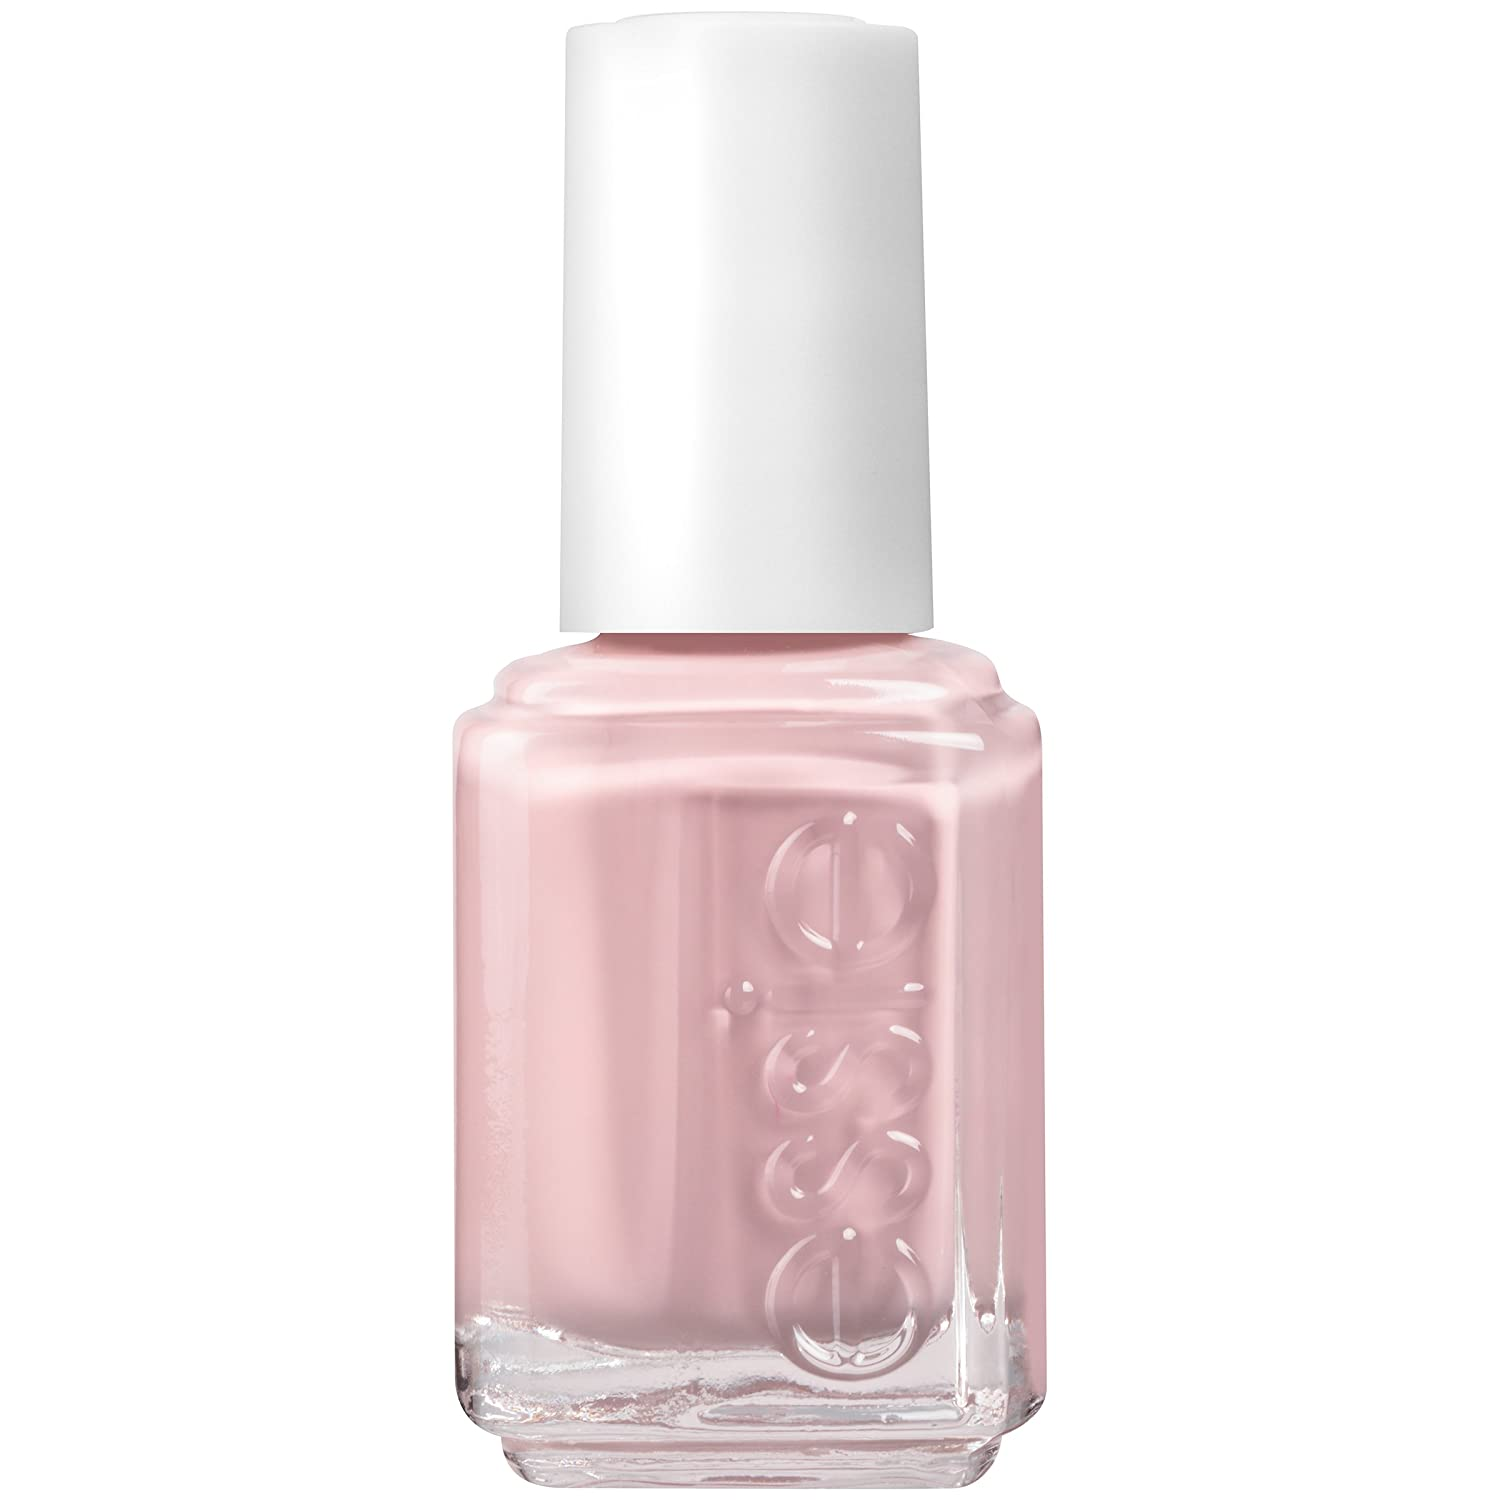 Amazon.com : essie nail polish, go go geisha, light pink nail polish ...